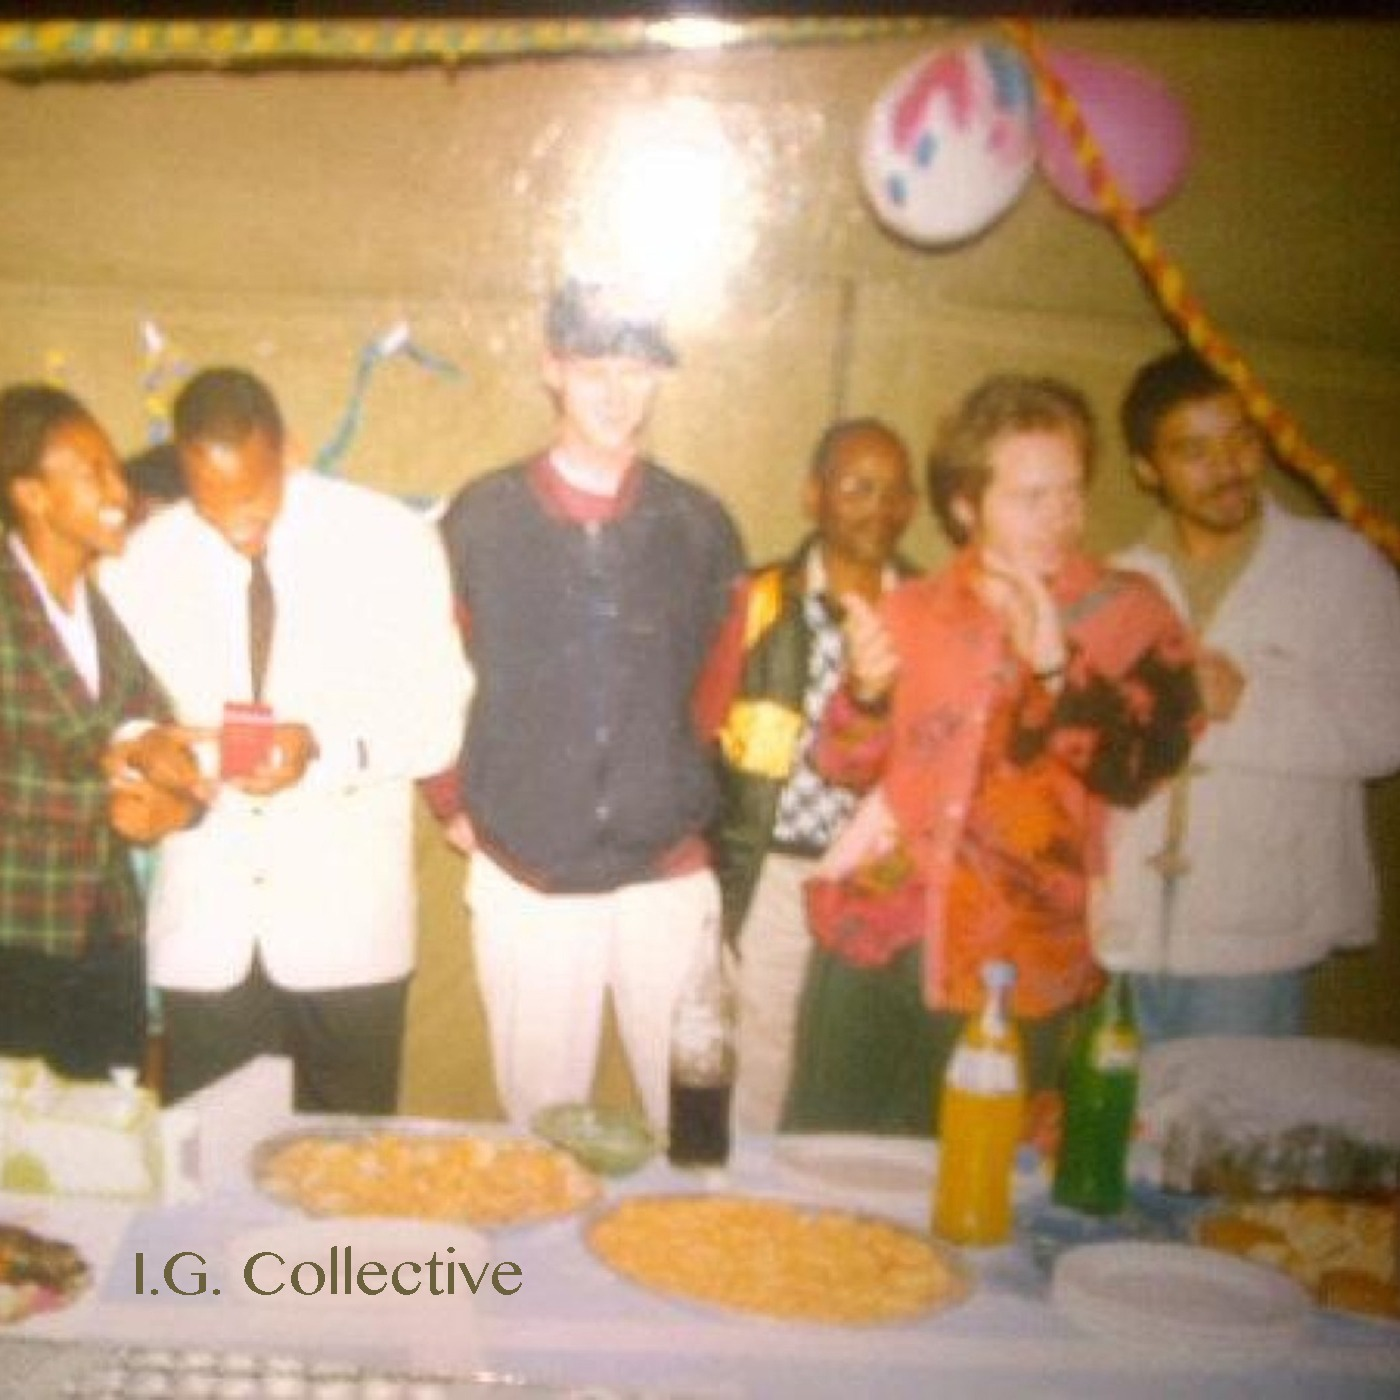 I. G. Collective